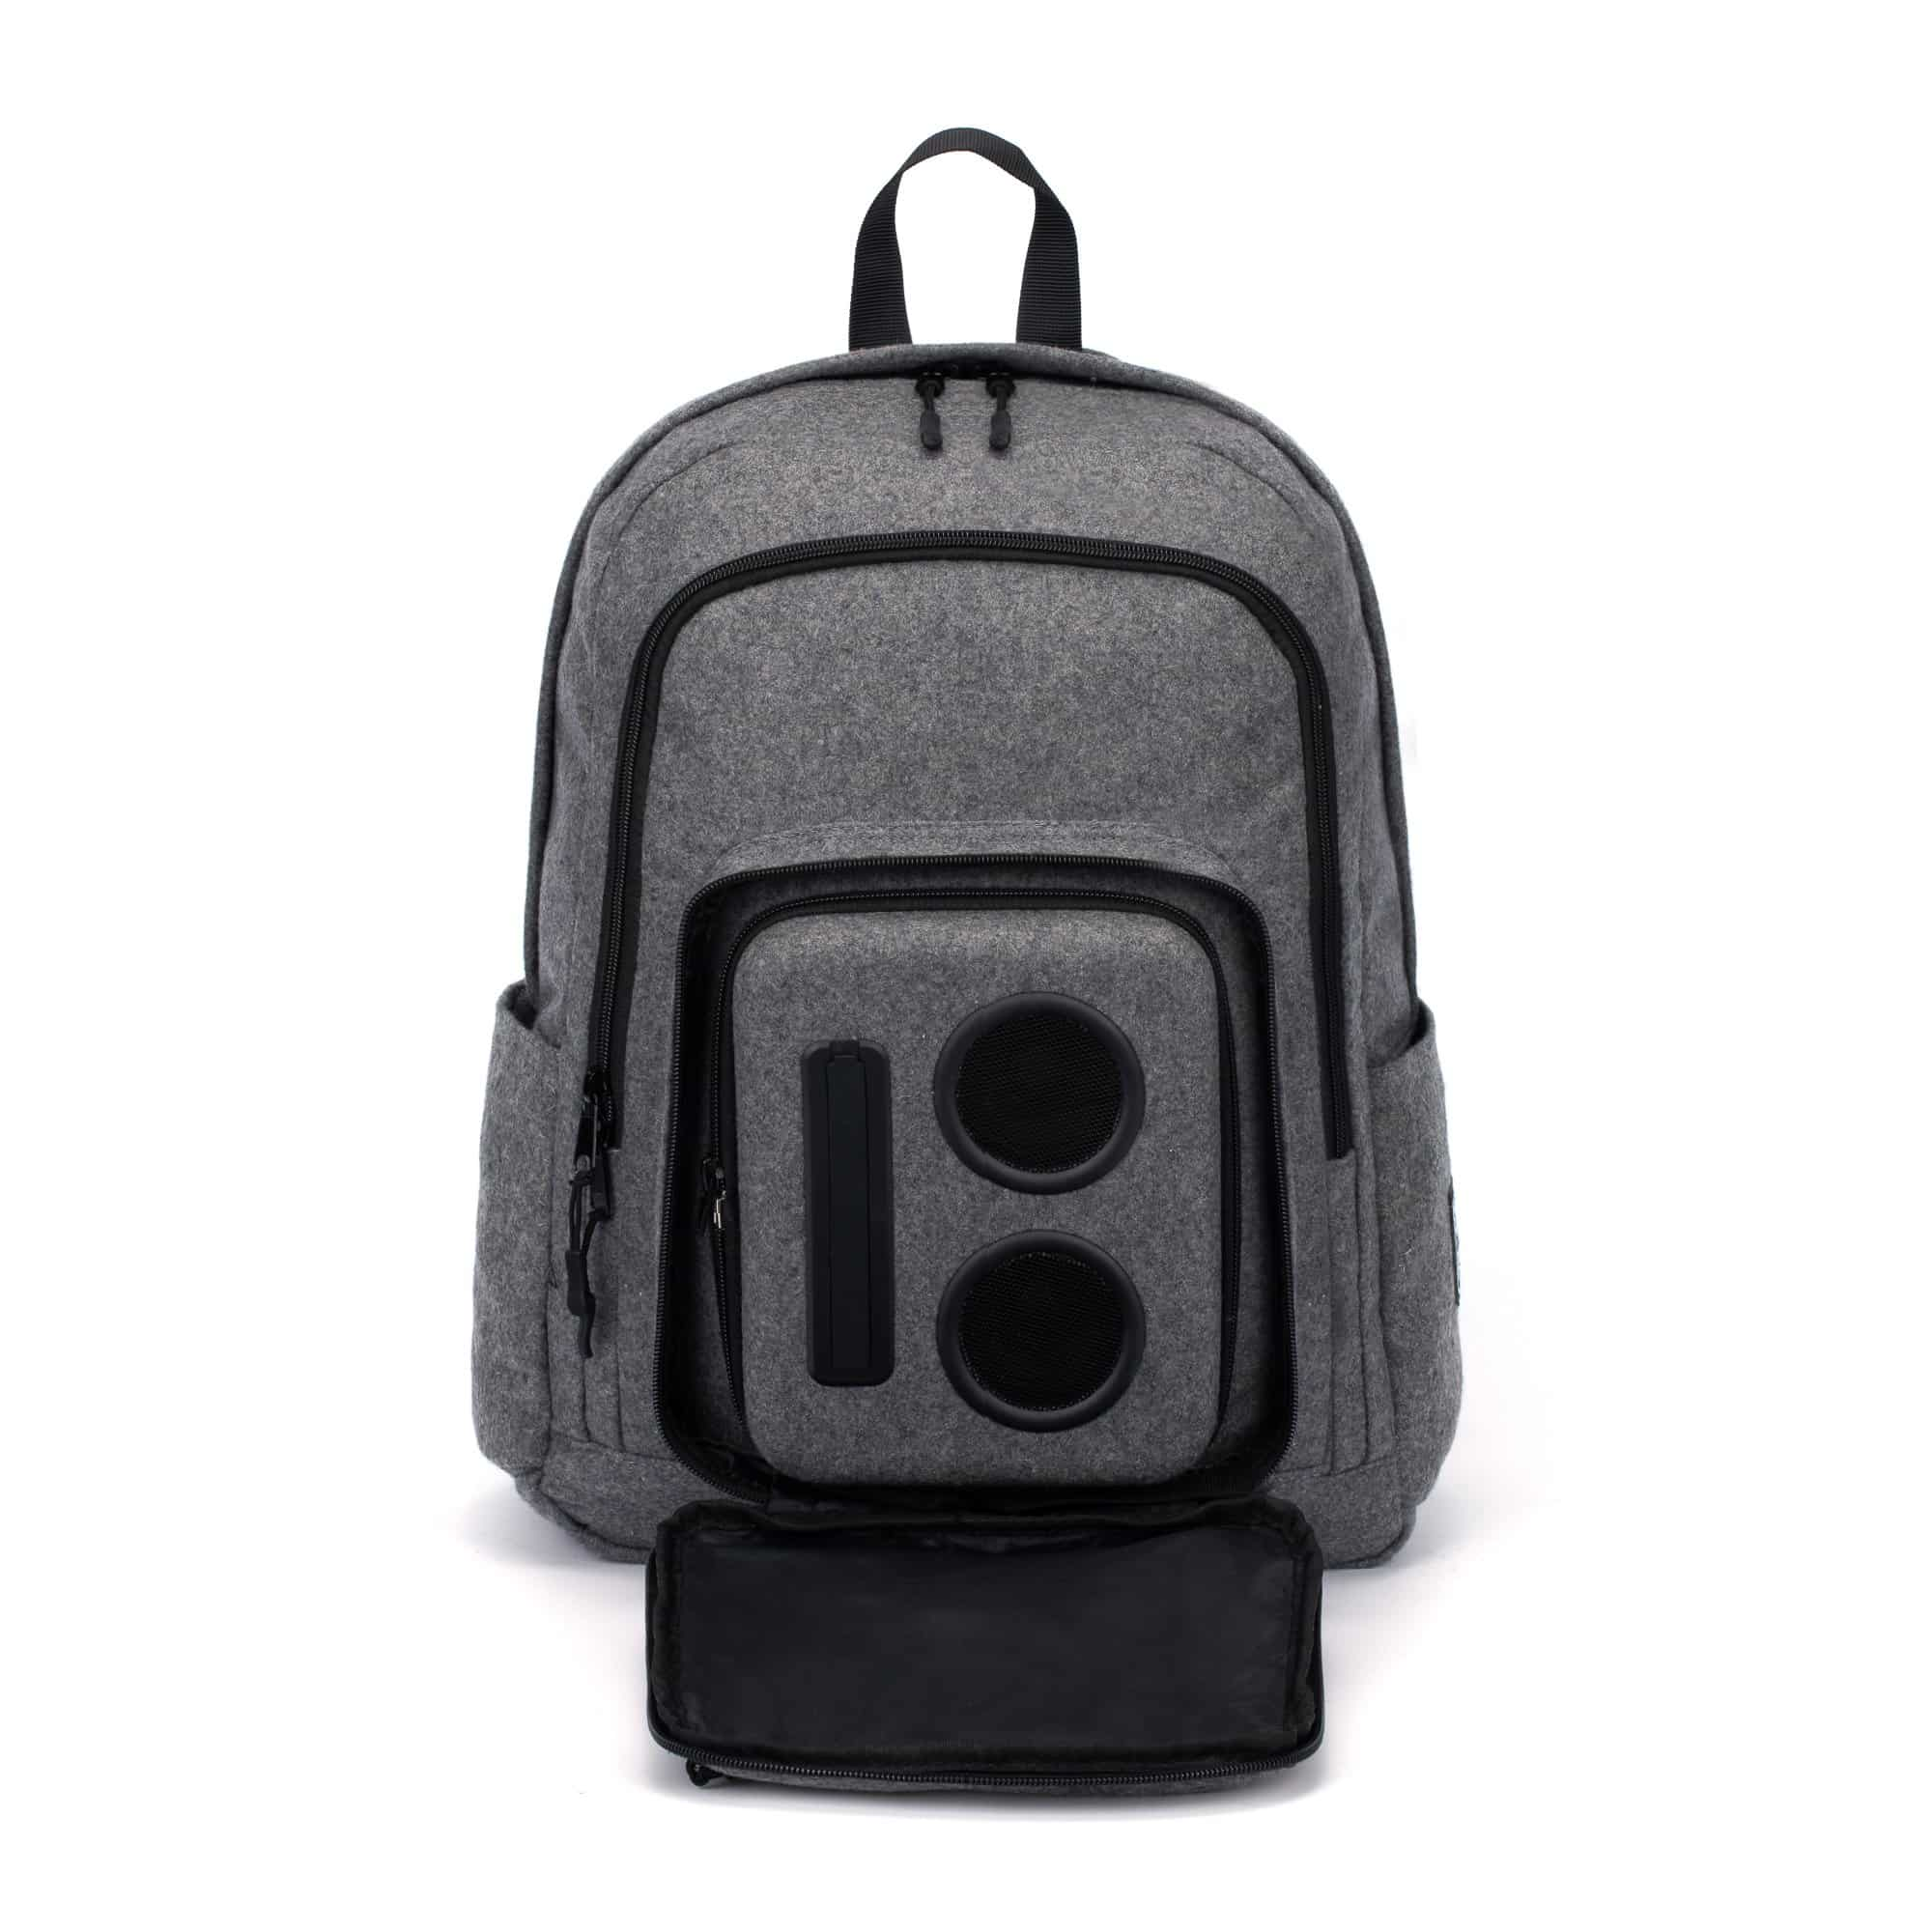 Bluetooth Speaker Backpack with 20-Watt Speakers and Sub 2